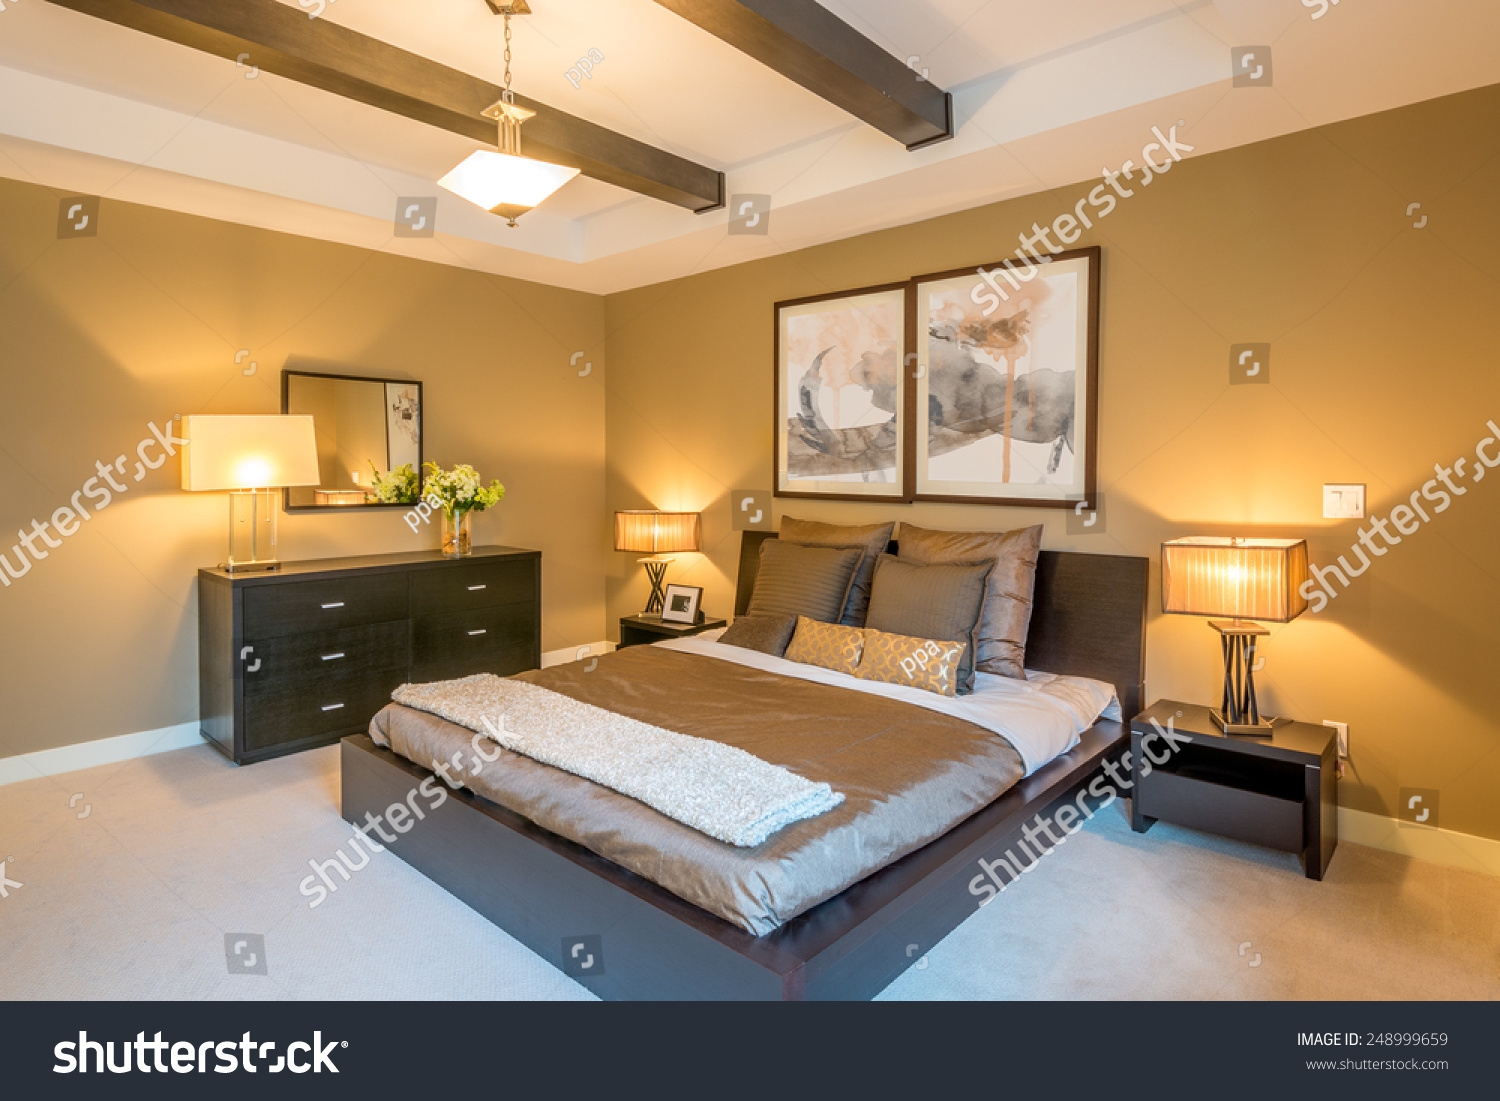 Modern Bright Bedroom Interior With Designer Pillows In A